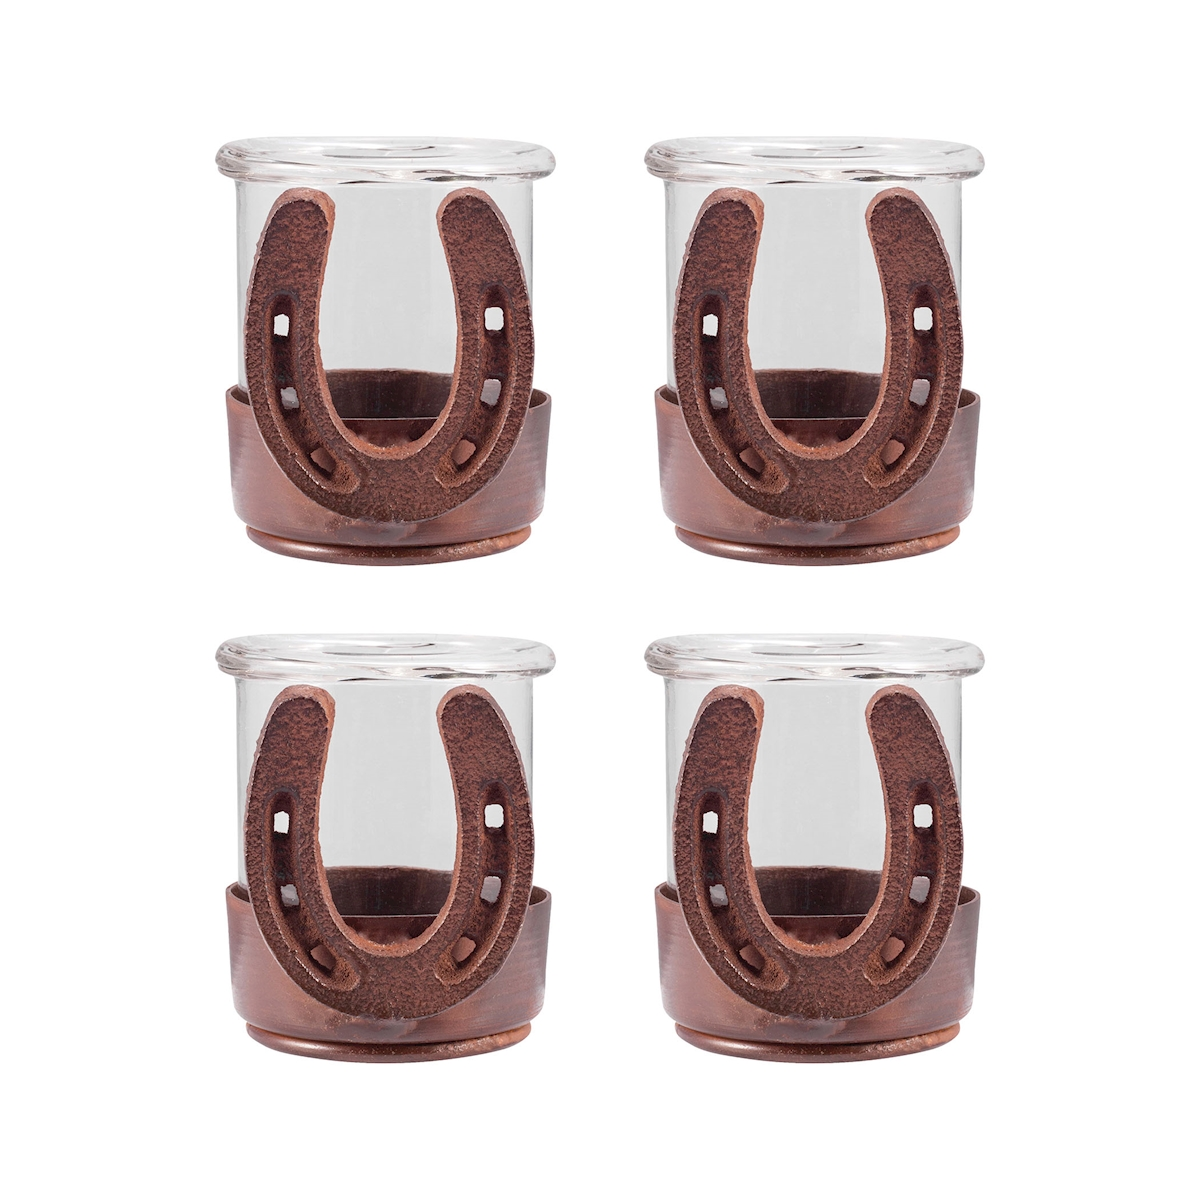 Pomeroy Horse shoes Set of 4 Votives 621222 S4